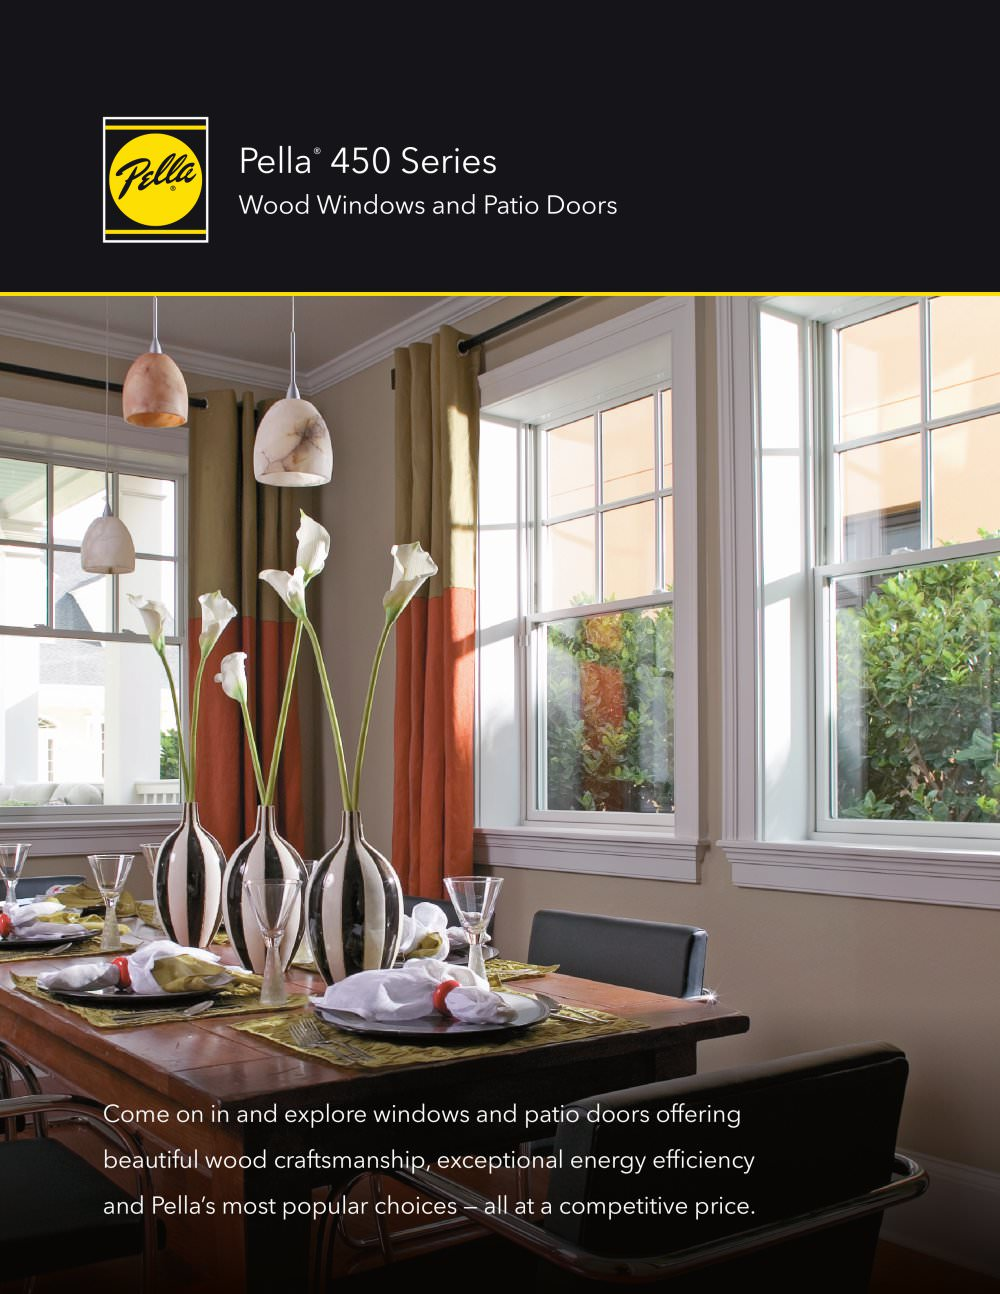 pella 450 series wood windows and patio doors 1 12 pages